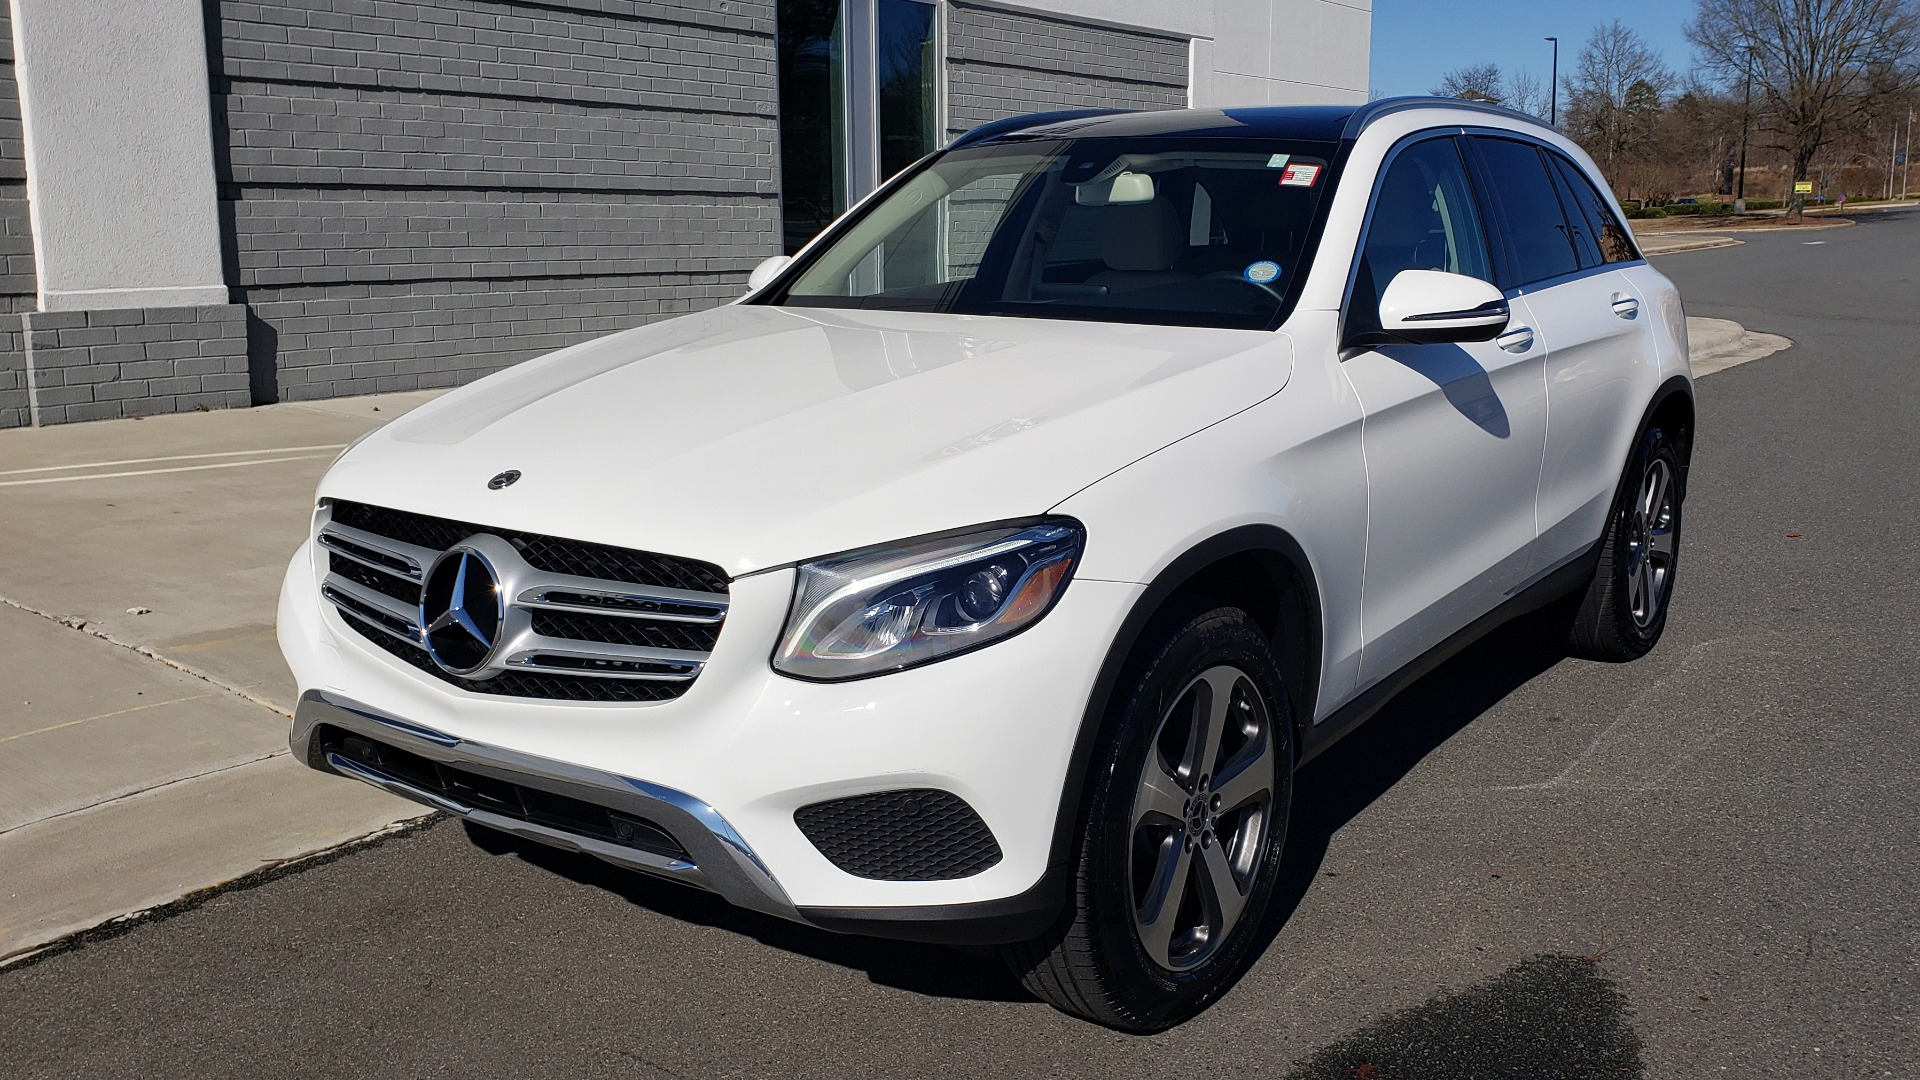 Used 2018 Mercedes-Benz GLC 300 4MATIC / PREM PKG / NAV / SUNROOF / REARVIEW for sale $36,995 at Formula Imports in Charlotte NC 28227 1